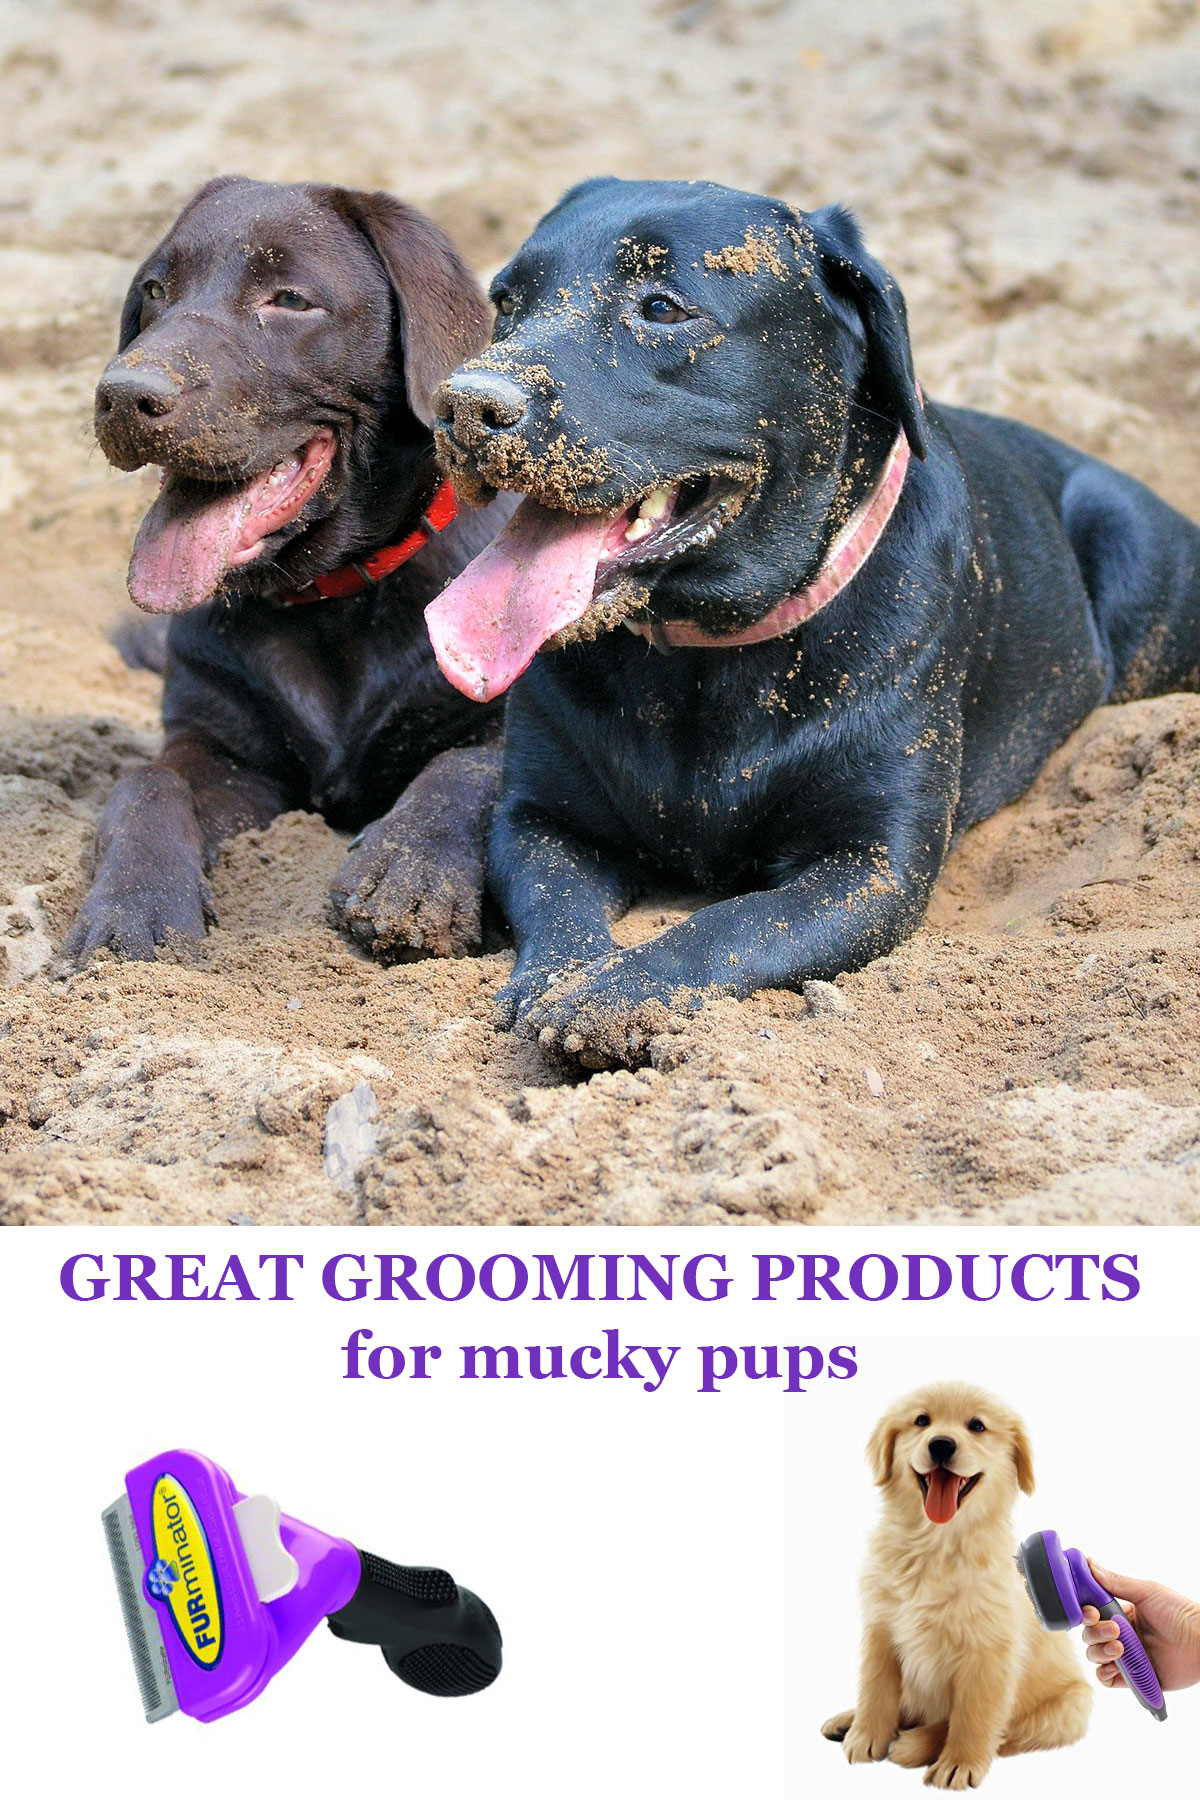 labgroomingproducts